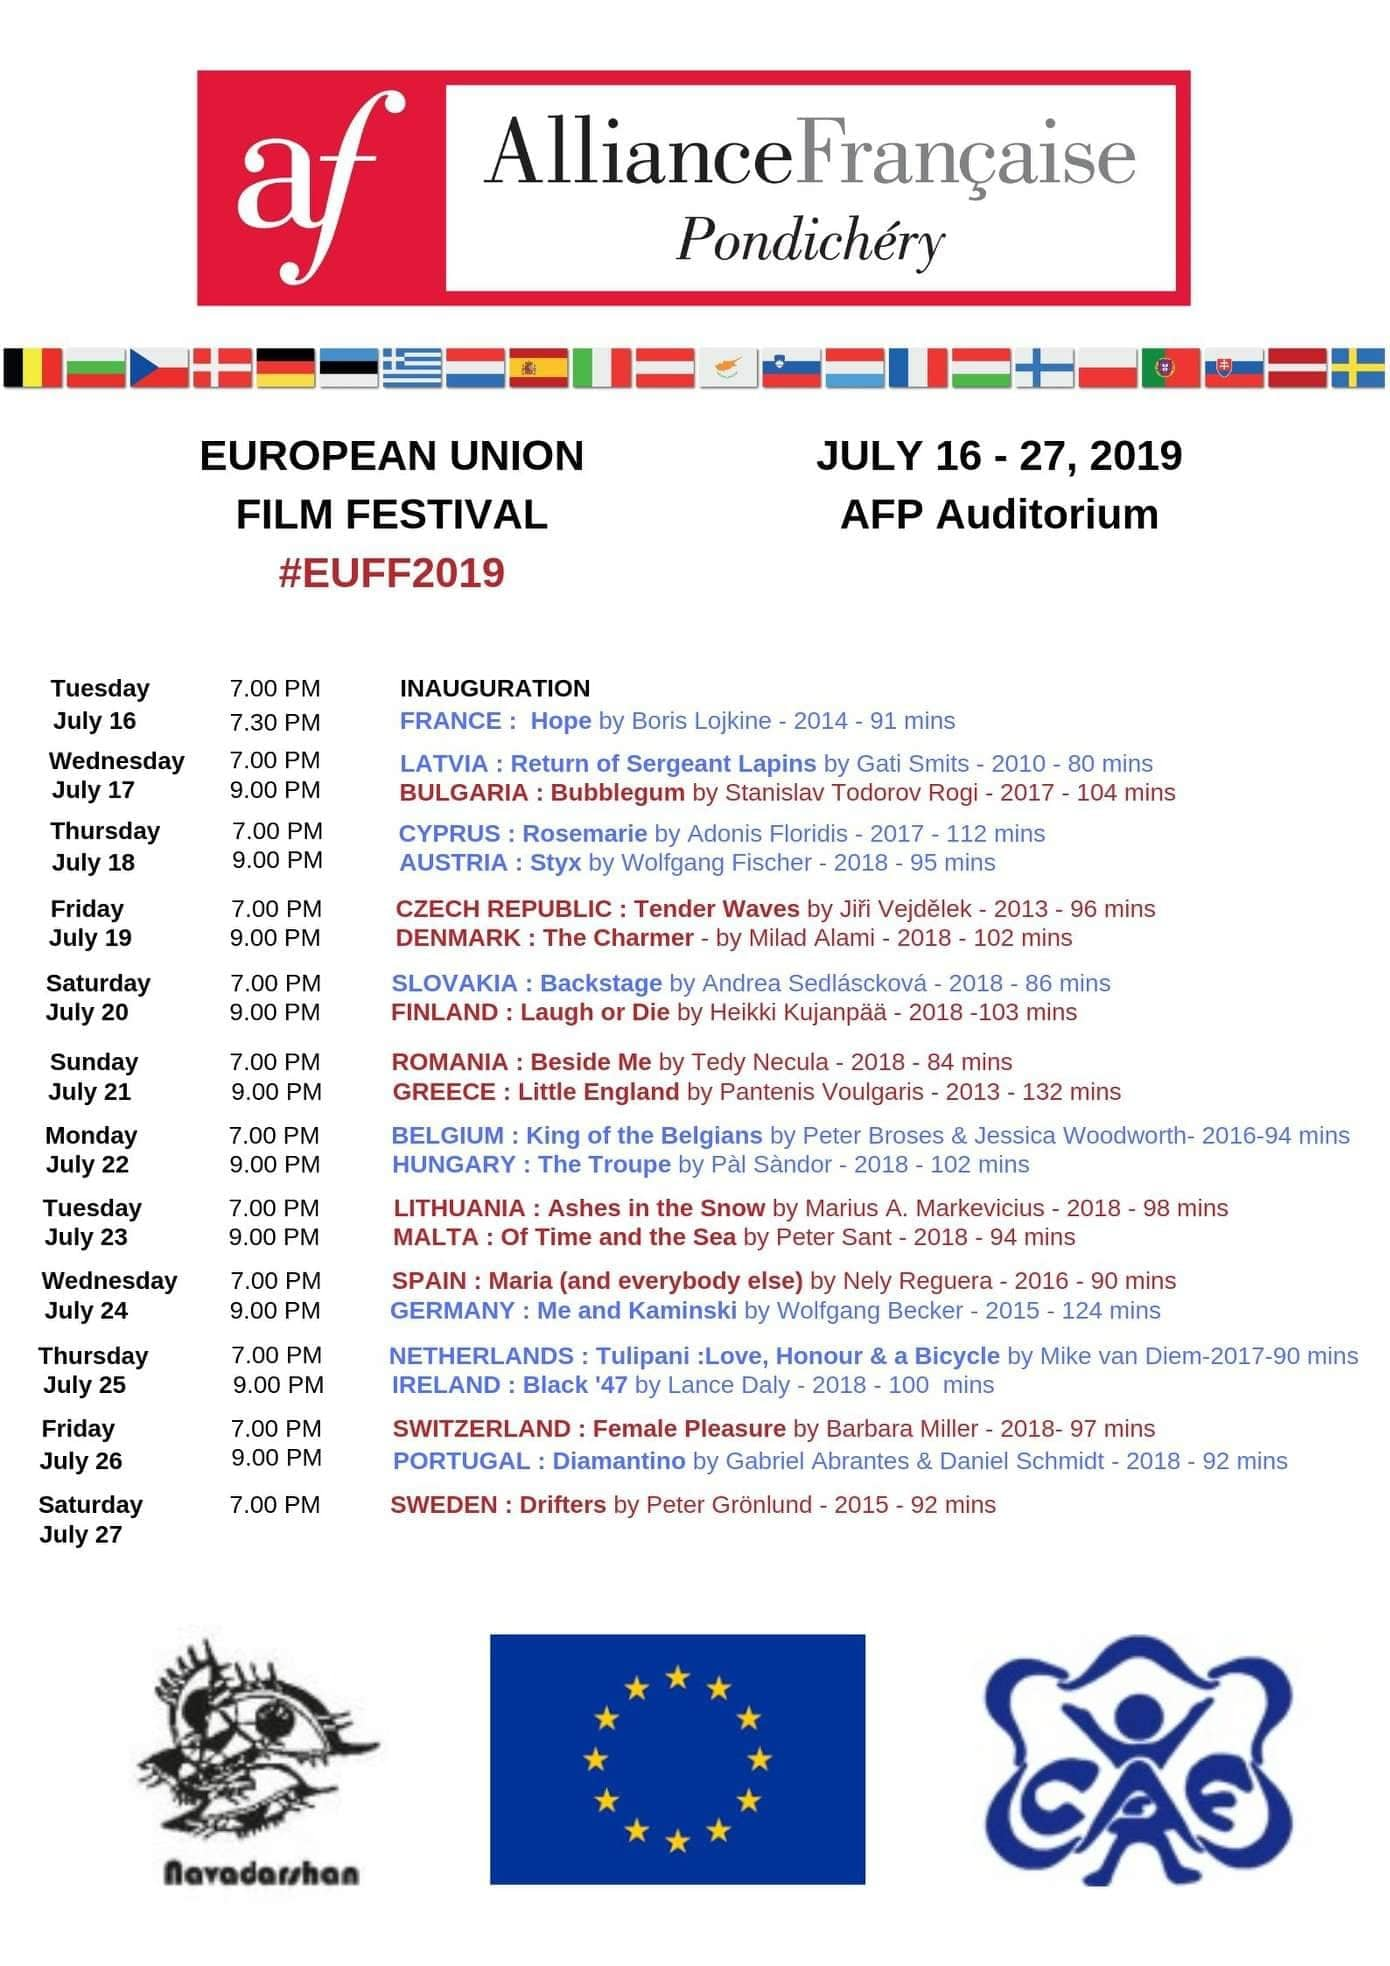 European Union Film Festival